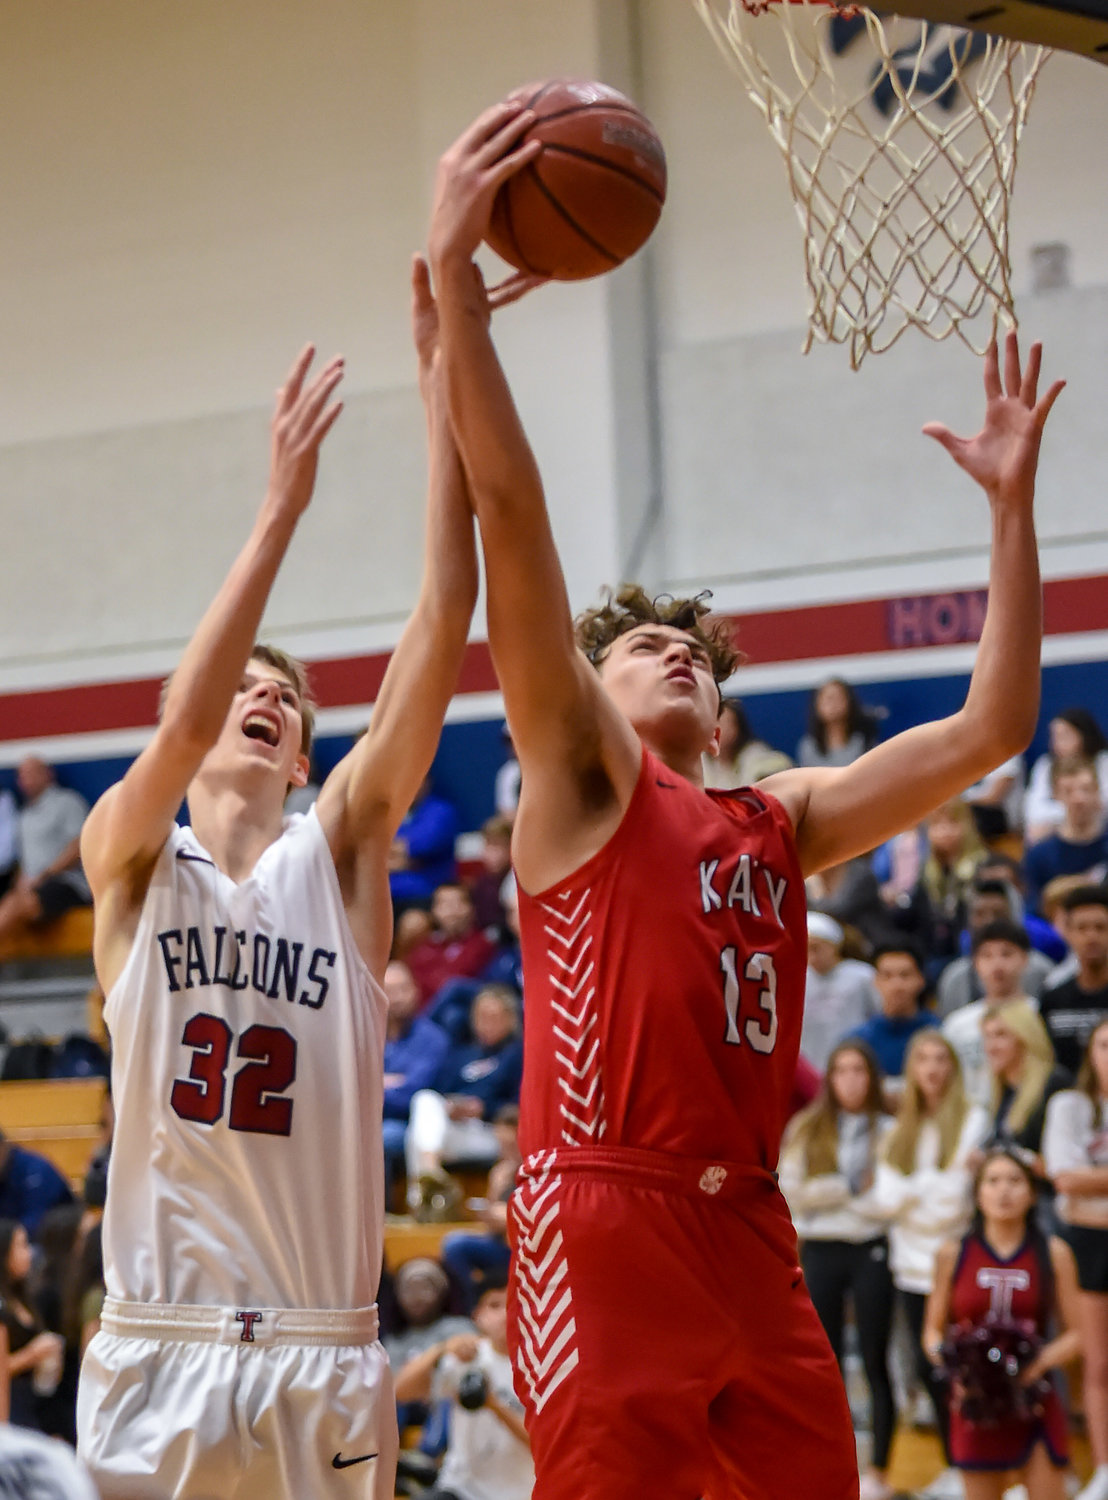 Katy Tx. Jan. 10, 2019: Katy's Casper Belaiter (13) and Tompkins Bryson Morehead (32) go up for the rebound during a district basketball game between Tompkins Falcons and Katy Tigers at Tompkins HS.  (Photo by Mark Goodman / Katy Times)